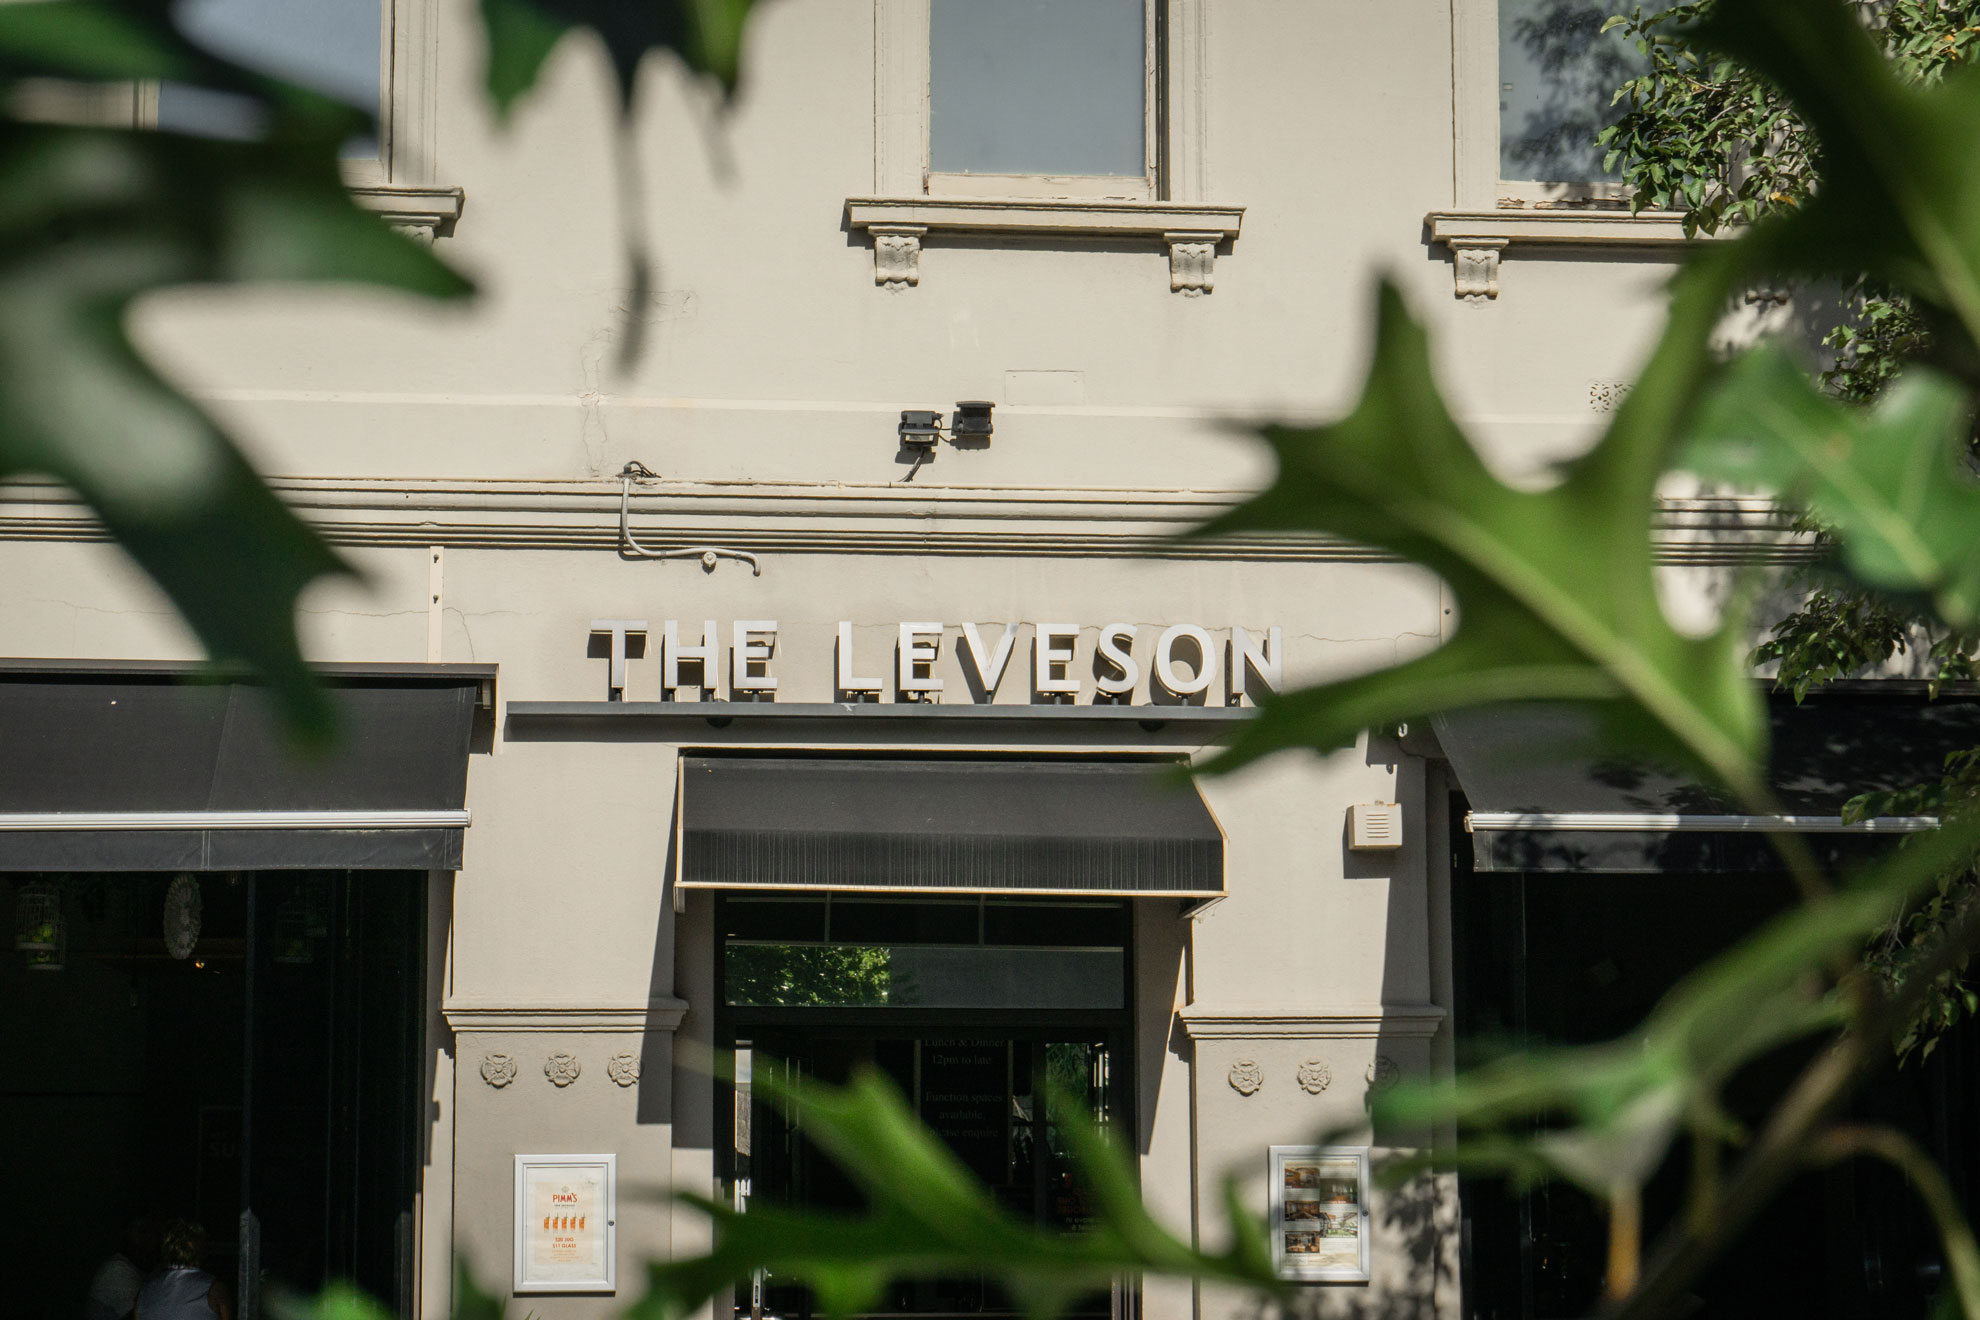 Home - image The-Leveson_slider on https://theleveson.melbourne